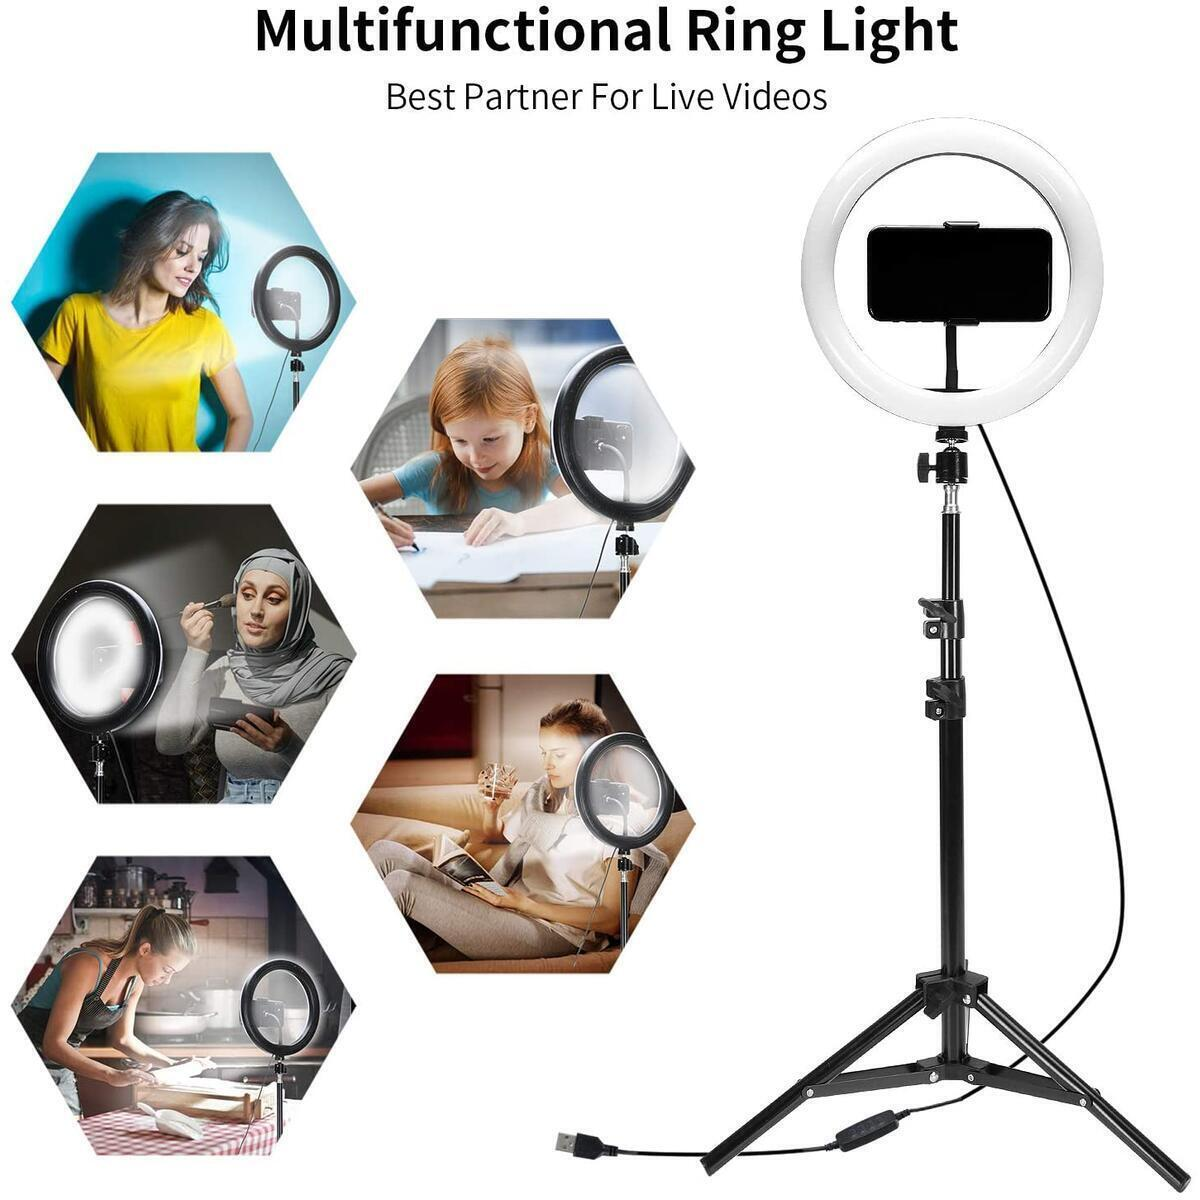 Flying Banana 10 inch Selfie Ring Light With Tripod Stand and Phone Holder & Remote Control 3 Light Modes For YouTube Videos/Makeup Light/Live Streaming/Vlog Compatible For iPhone & Android Phone